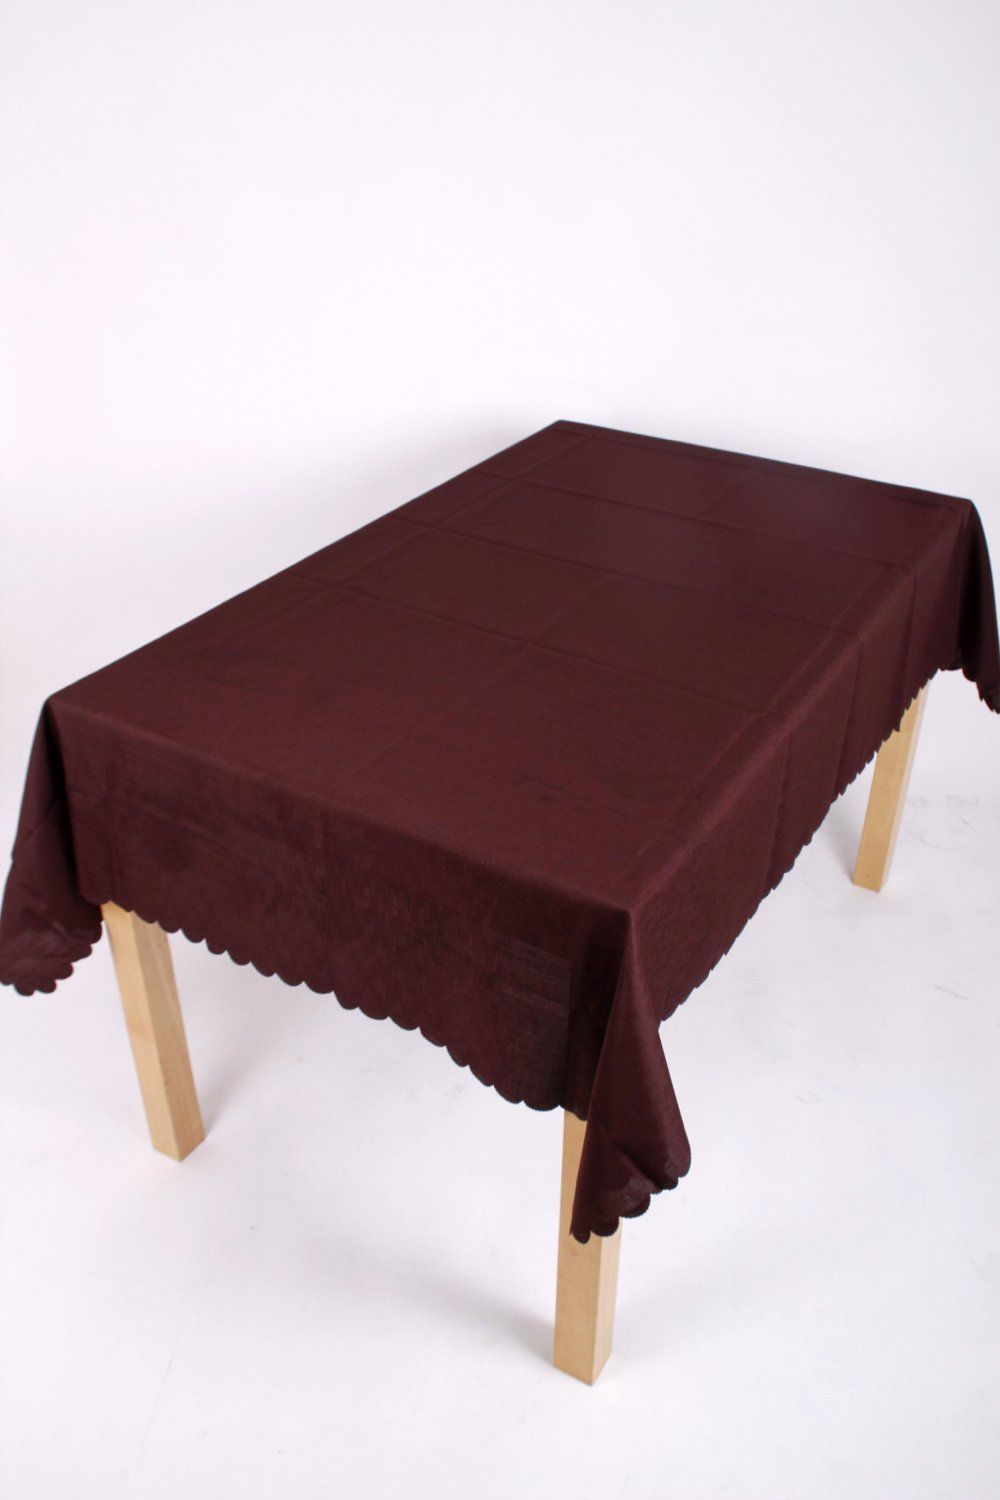 Shell Tablecloth Chocolate Brown 137x229cm Oval